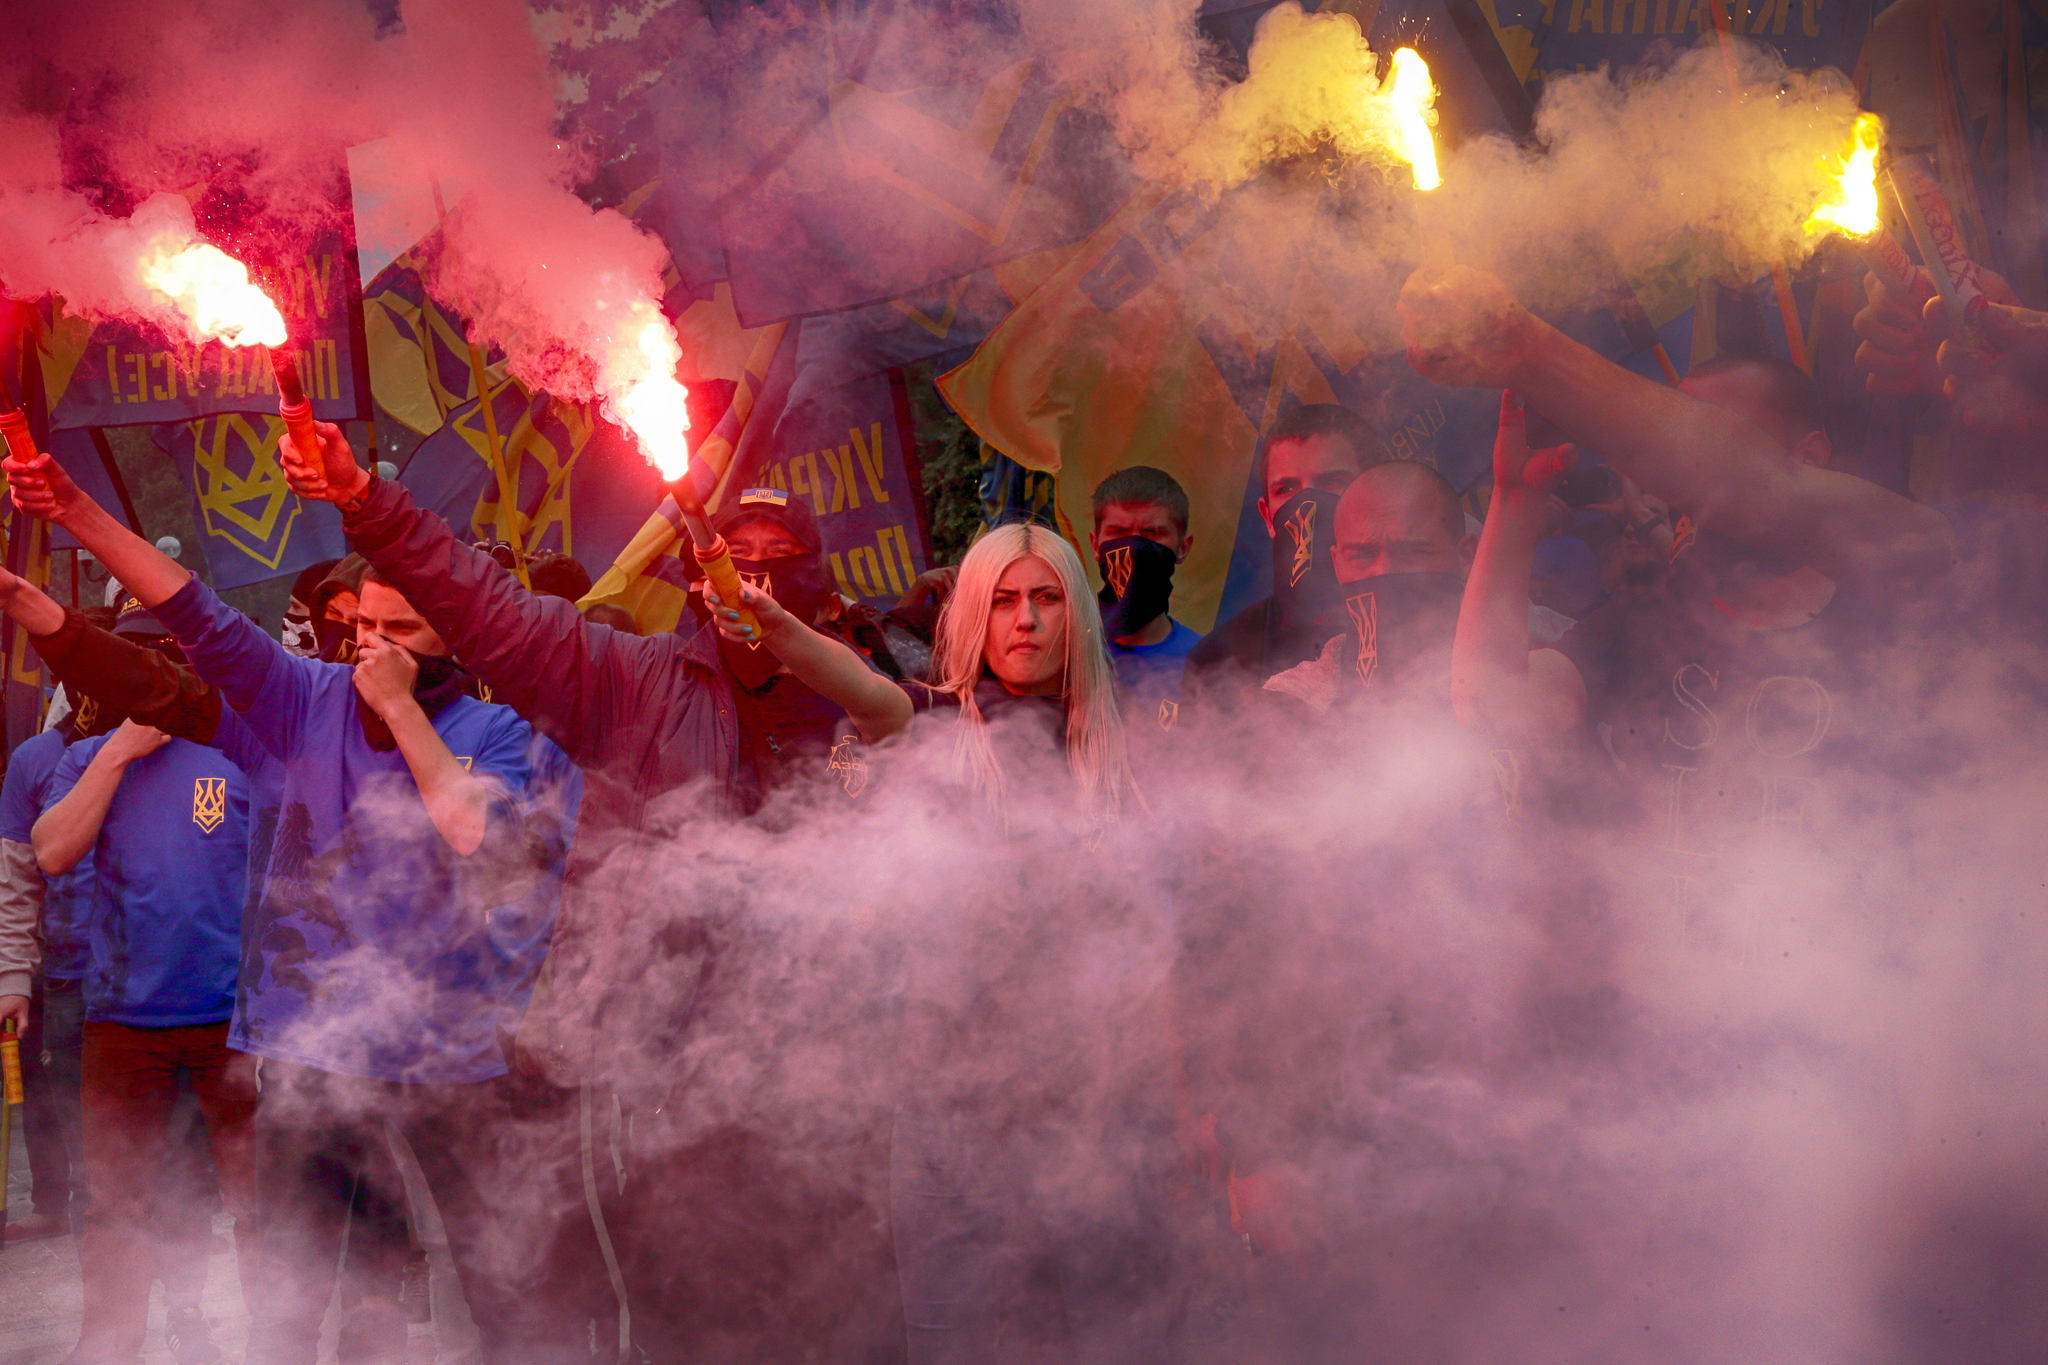 Volunteers of the Azov Civil Corps light flares during rally at the Ukrainian Parliament, Friday, May 20, 2016, against holding local elections in the occupied eastern territories of Ukraine. As part of an internationally brokered peace agreement, Ukraine must hold local elections in two eastern regions controlled by Russian-backed rebels, but there are major concerns about ensuring the vote takes place in a secure and safe atmosphere. (AP Photo/Efrem Lukatsky)